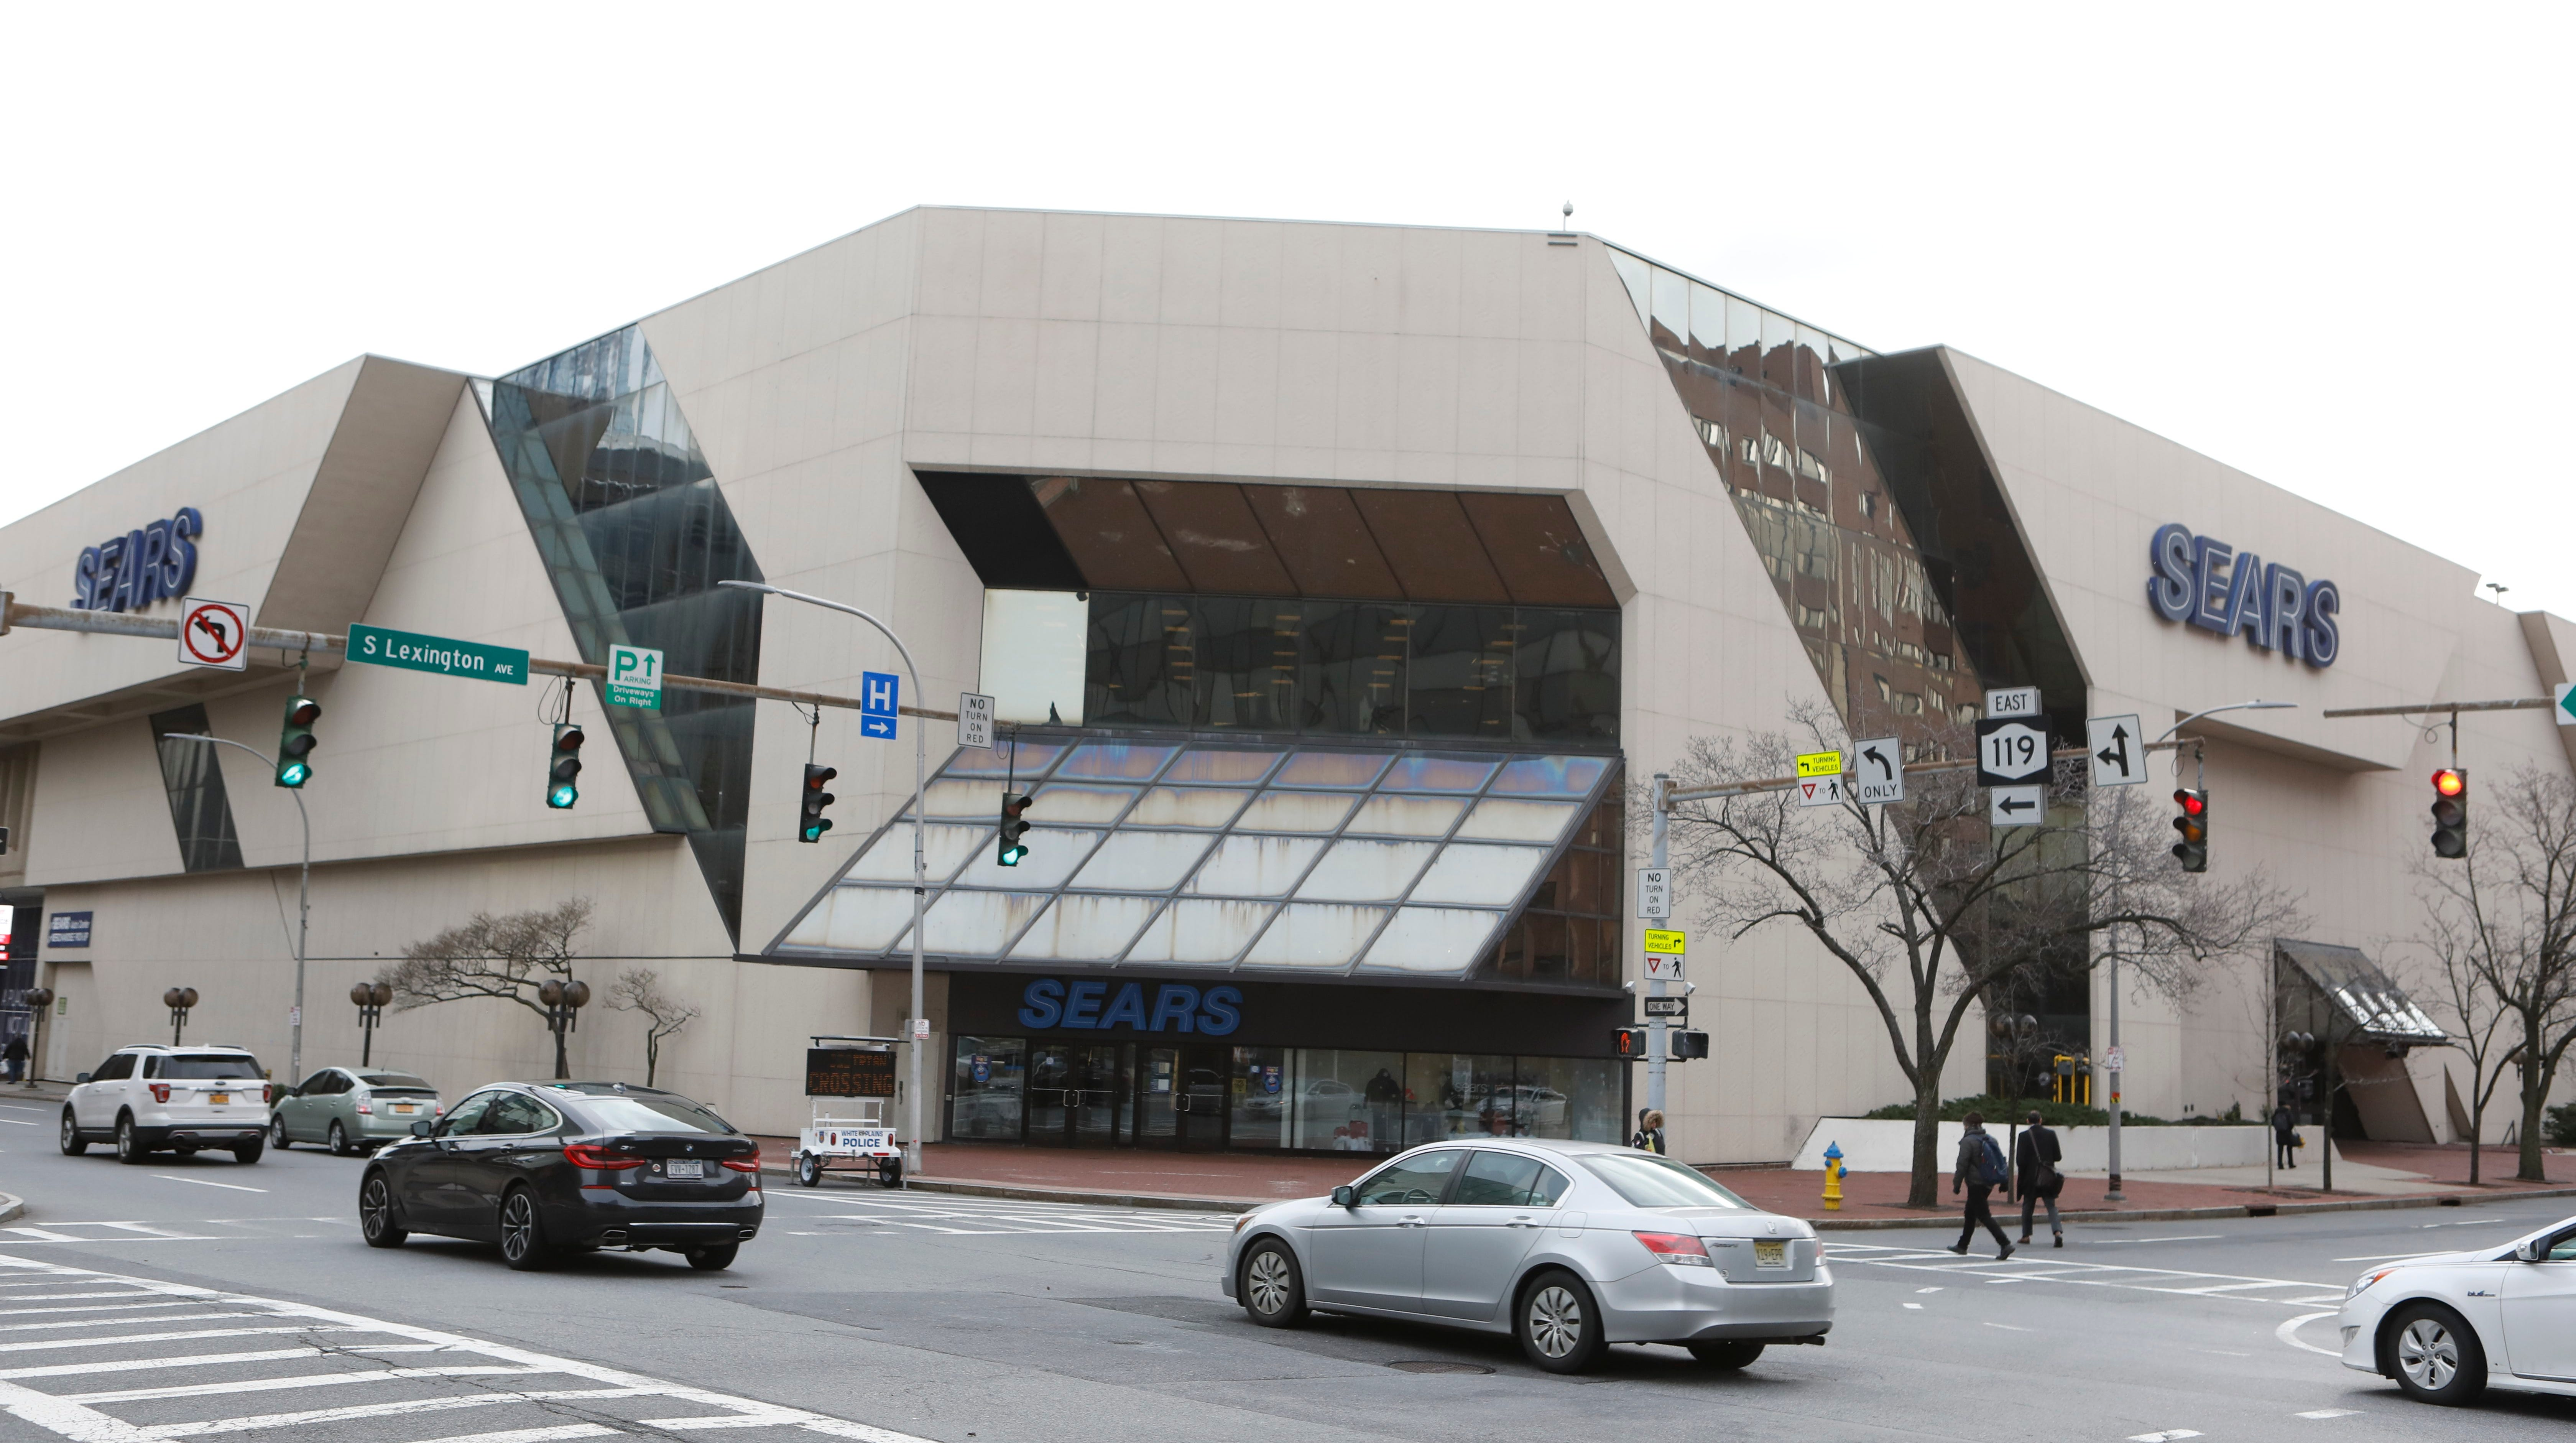 The Sears in White Plains, N.Y., is two blocks from the U.S. bankruptcy court.